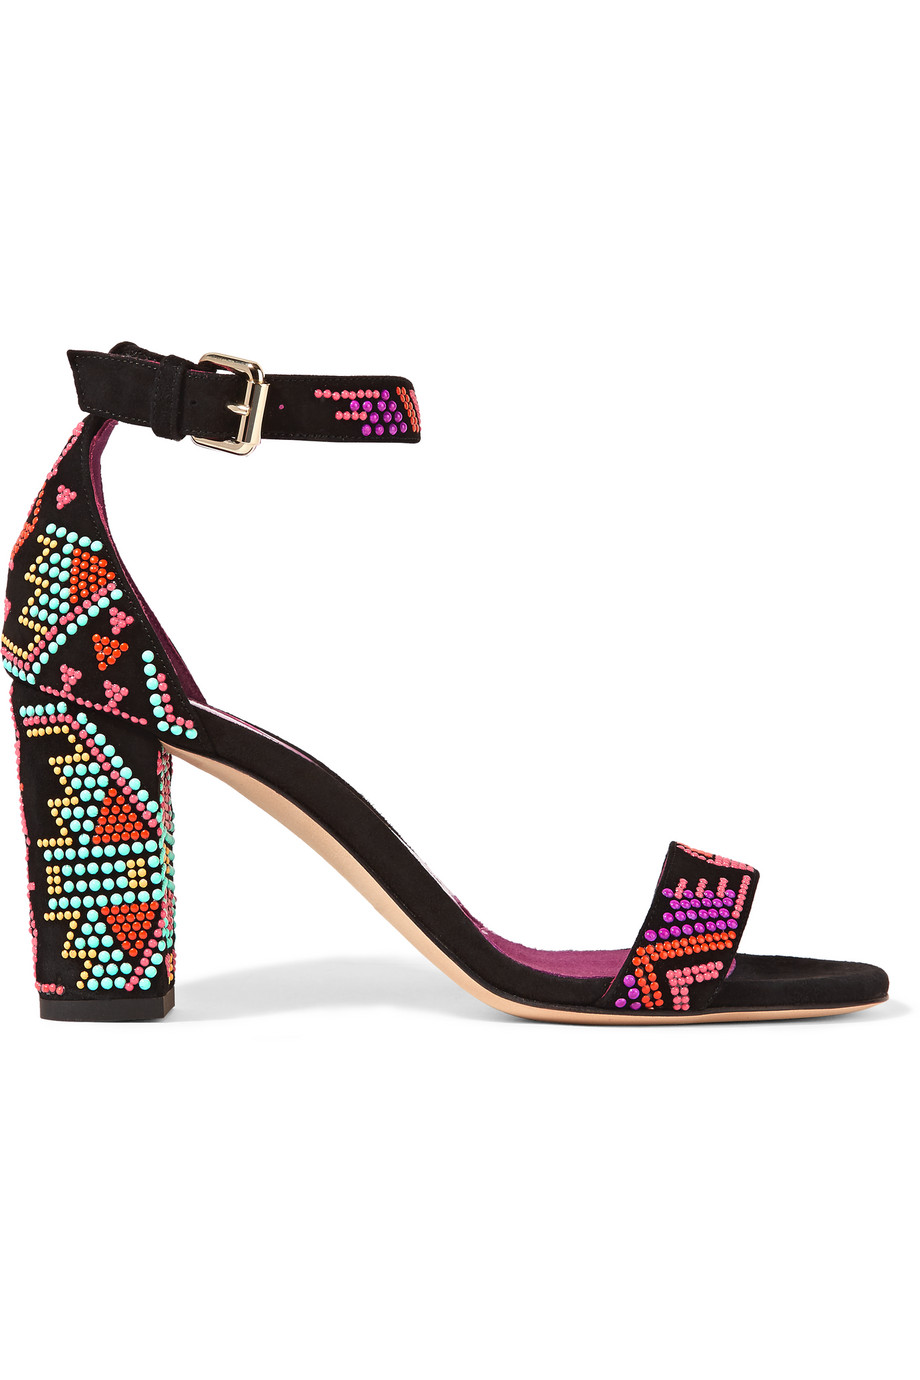 Brian Atwood Margo Beaded Suede Sandals, Black/Magenta, Women's US Size: 10.5, Size: 41